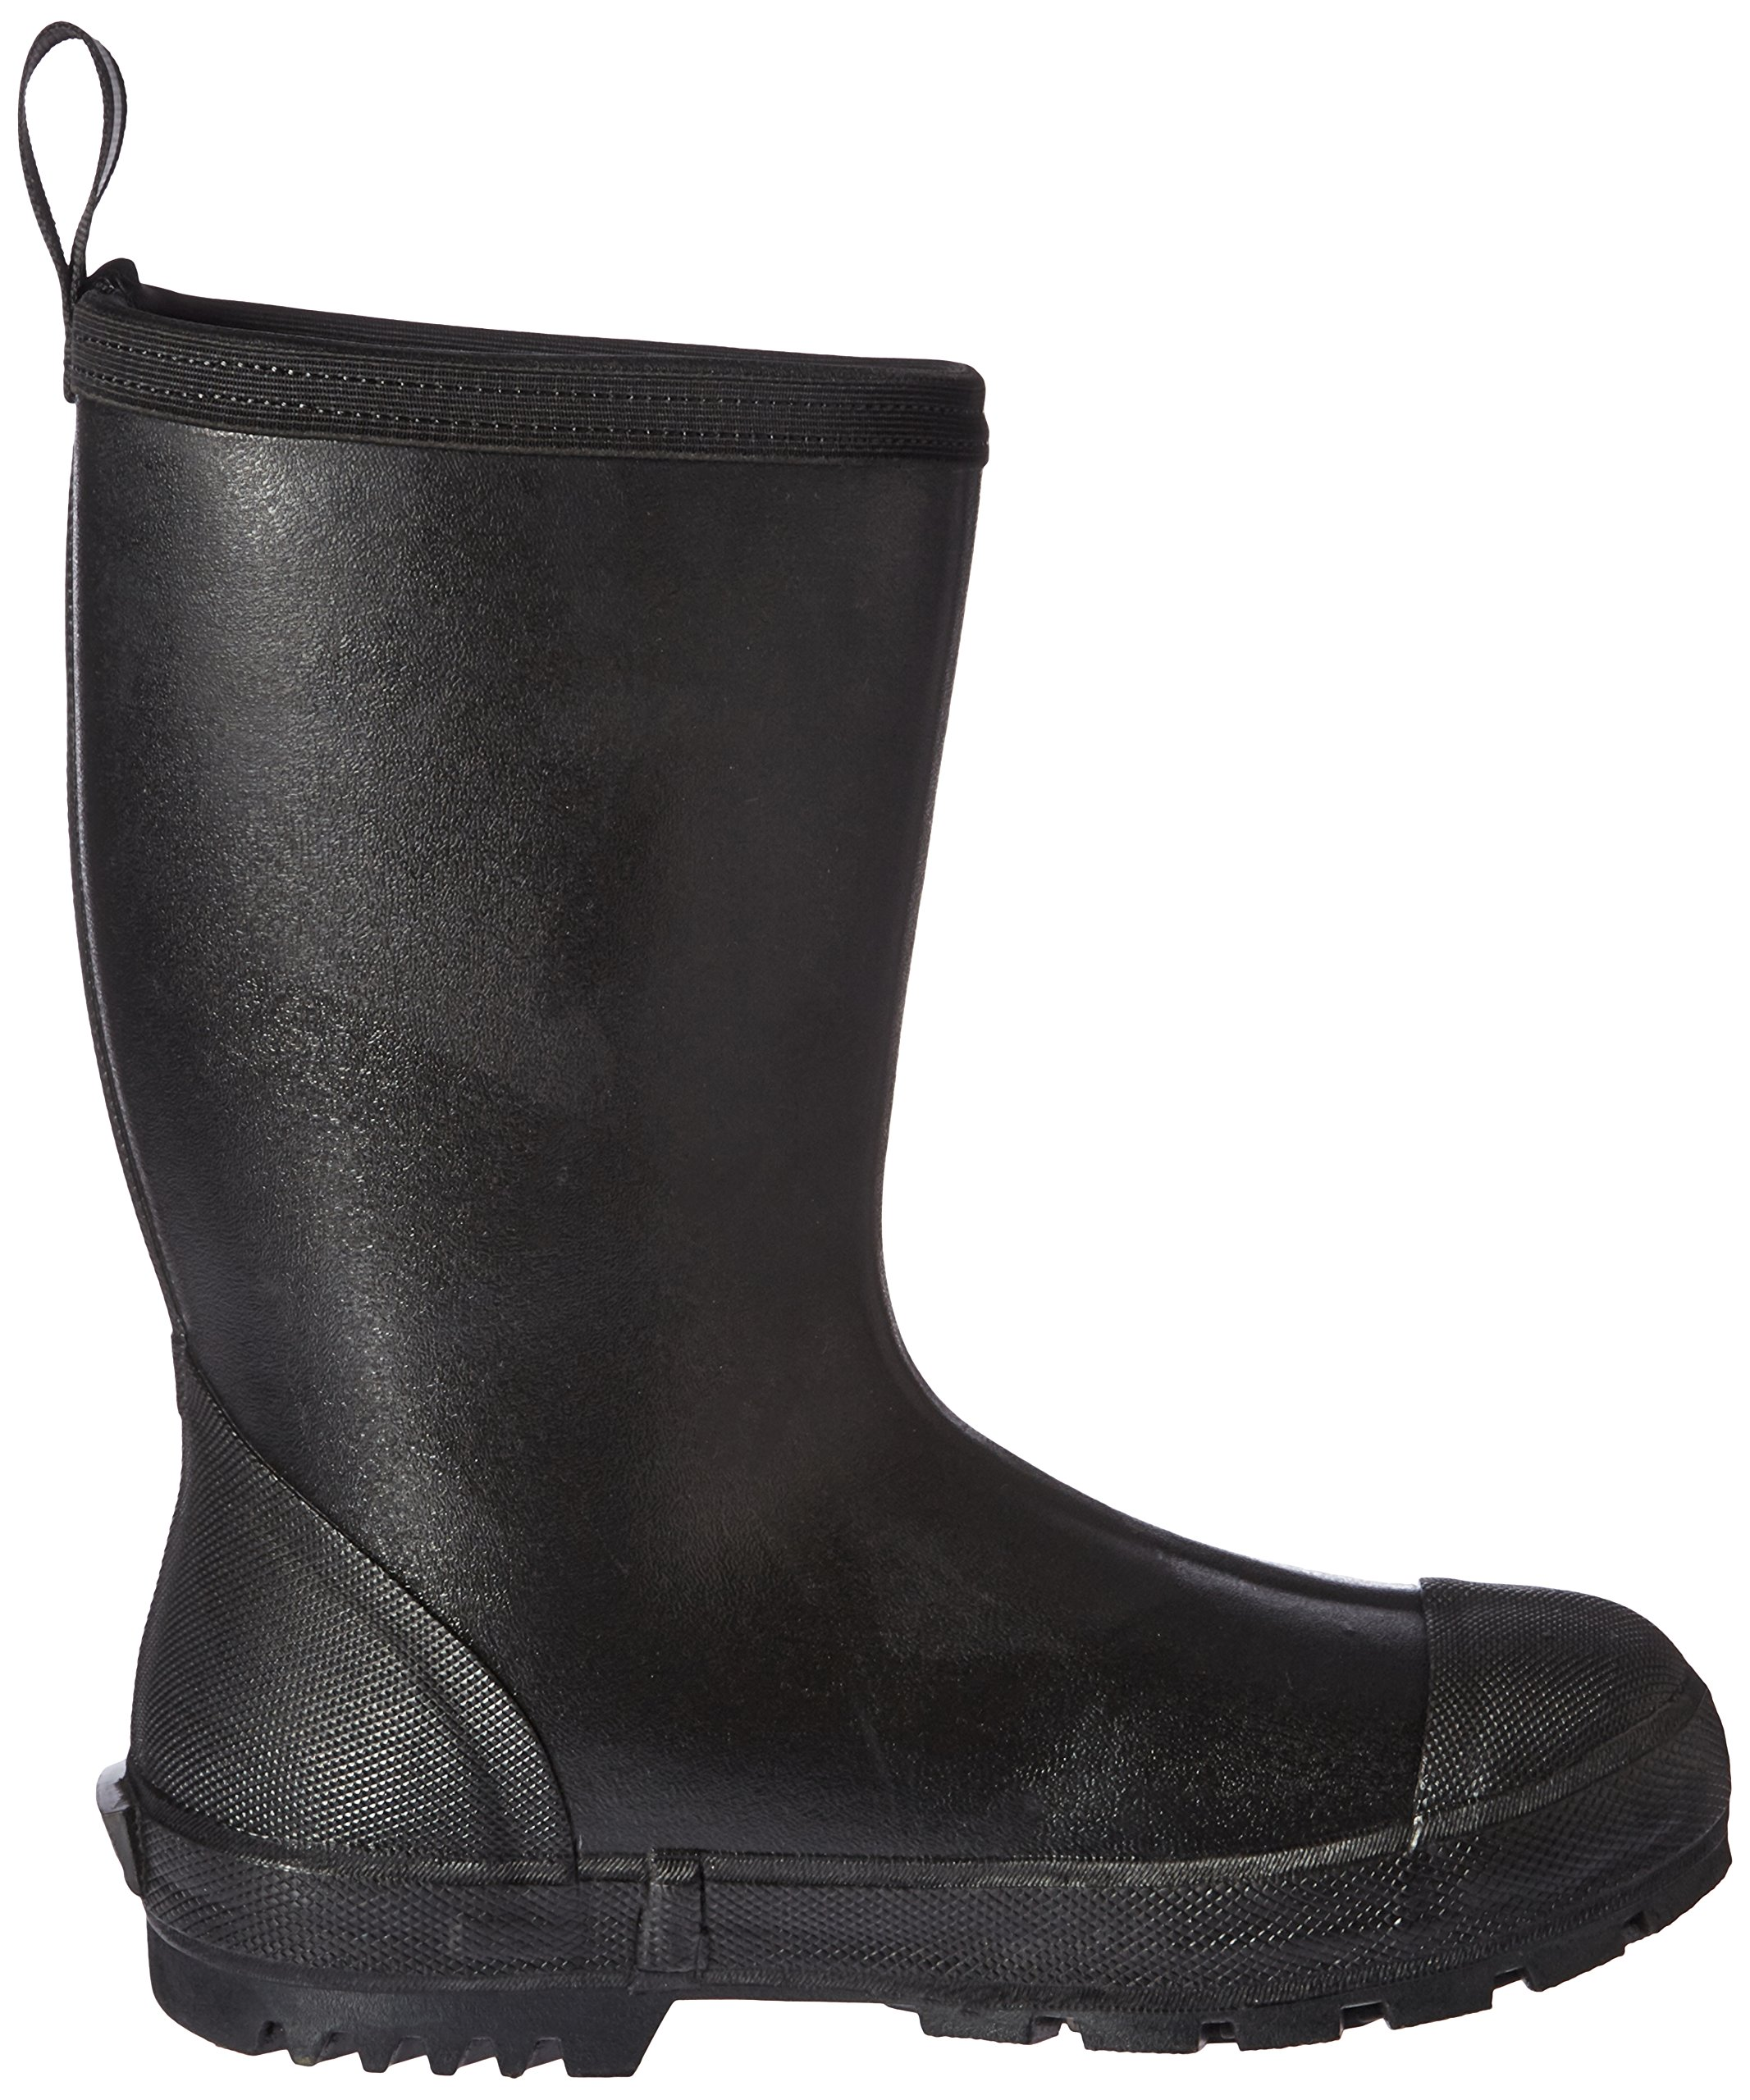 Muck Boot Men's Chore Resistant Mid Work Boot, Black, 13 M US by Muck Boot (Image #7)